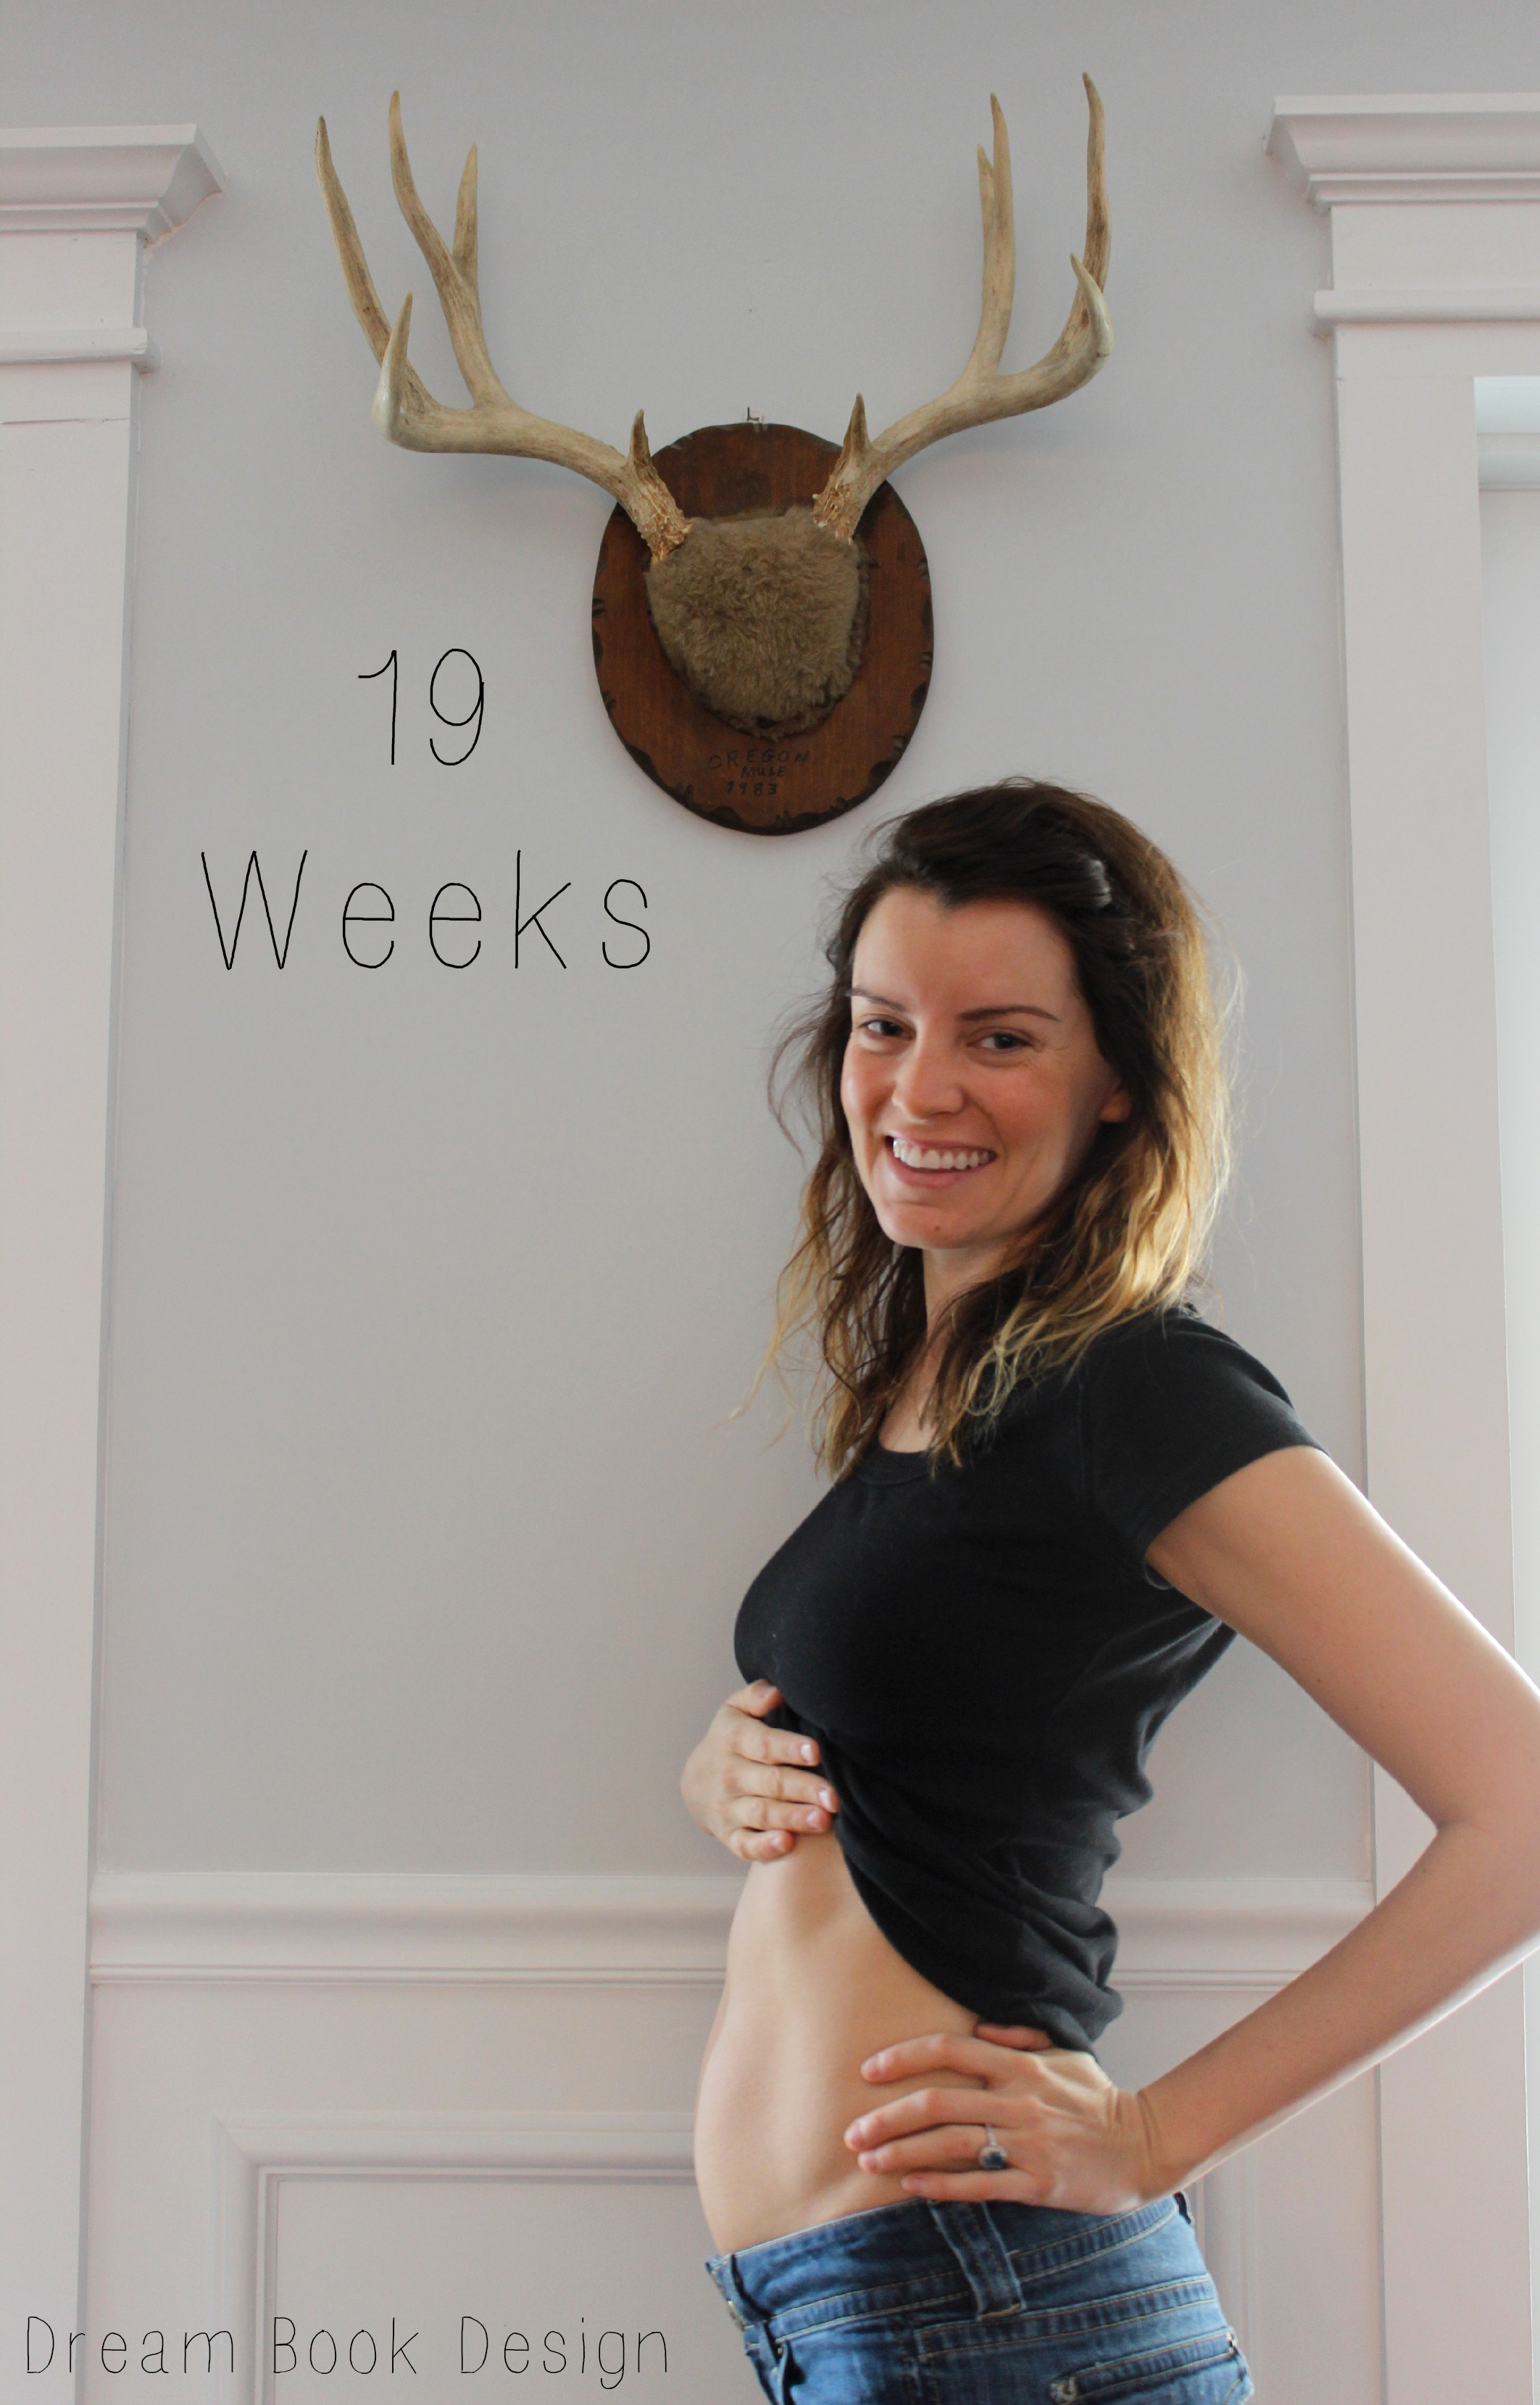 19 Weeks Pregnant - Dream Book Design